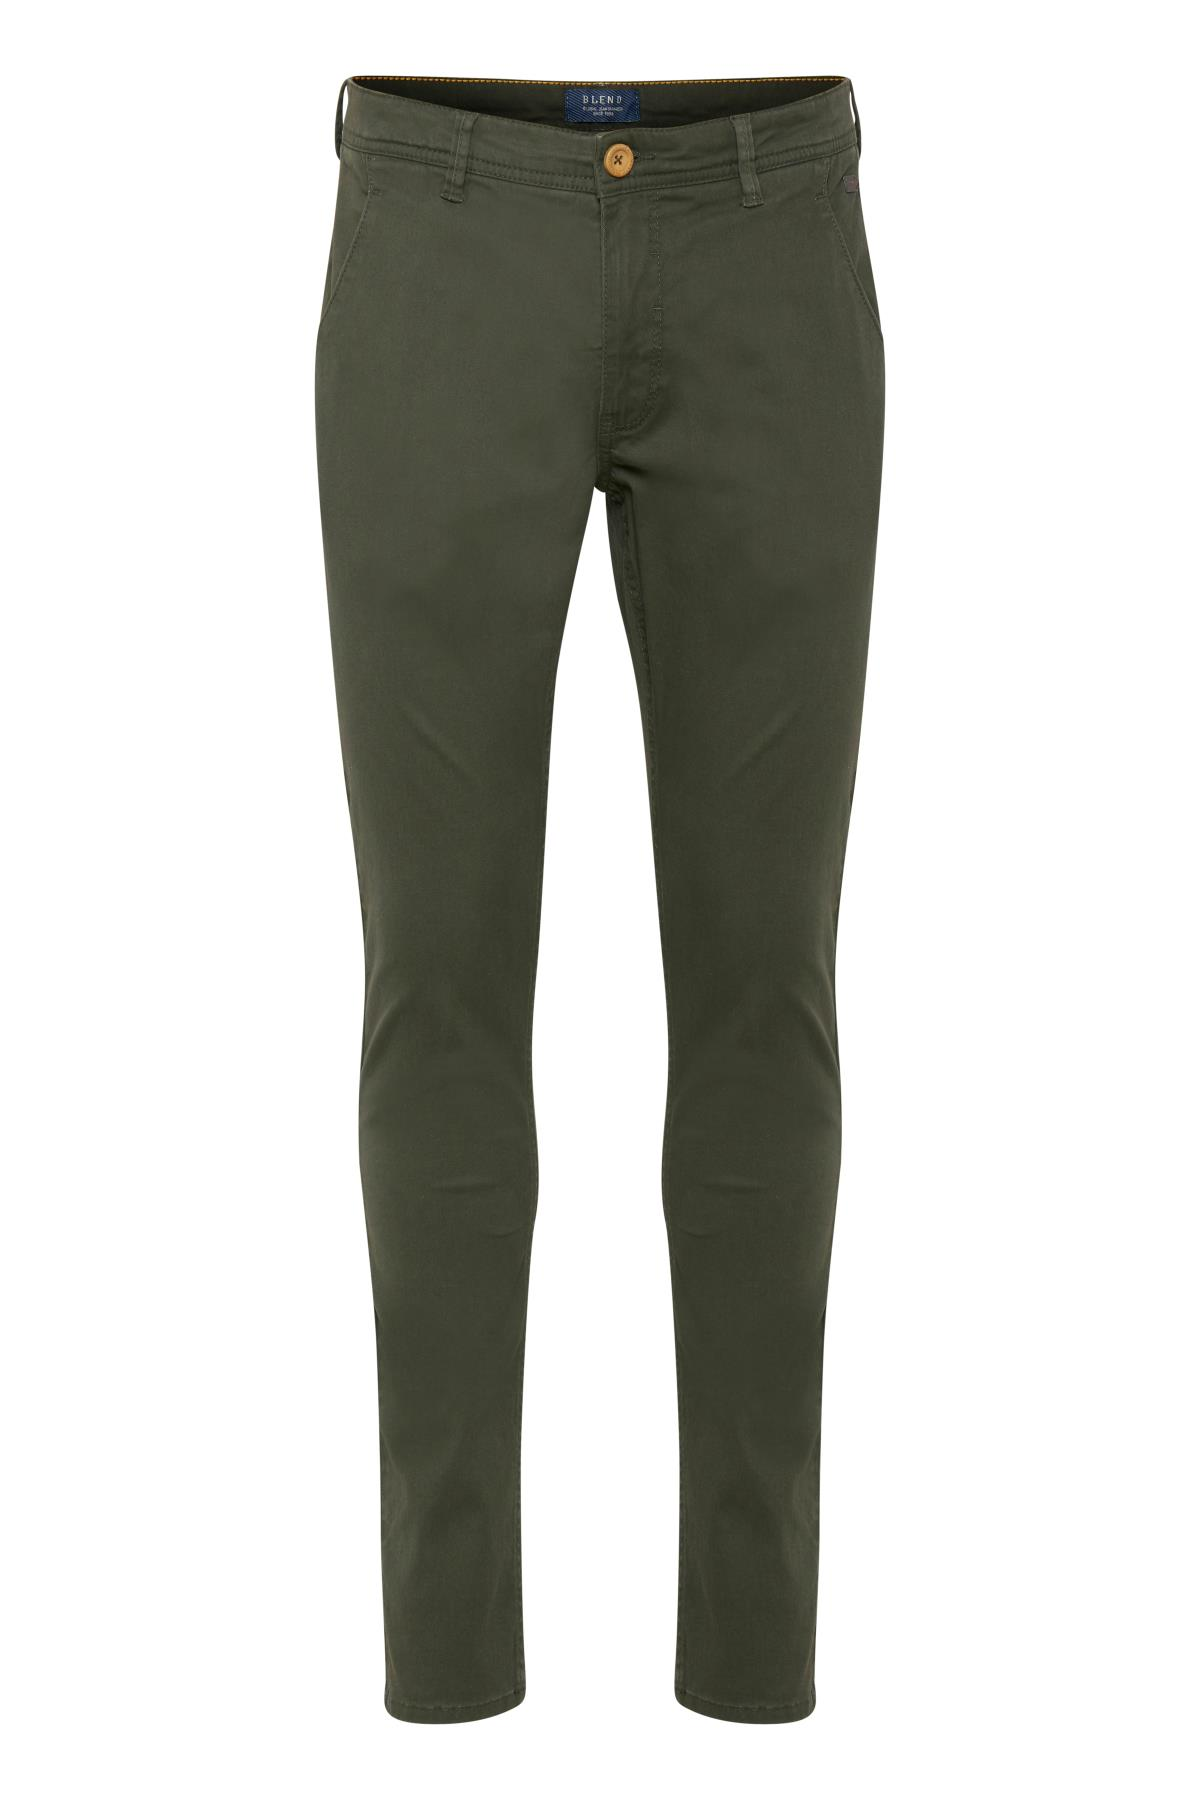 Forest Night Green Pants Casual – Køb Forest Night Green Pants Casual fra str. 28-38 her